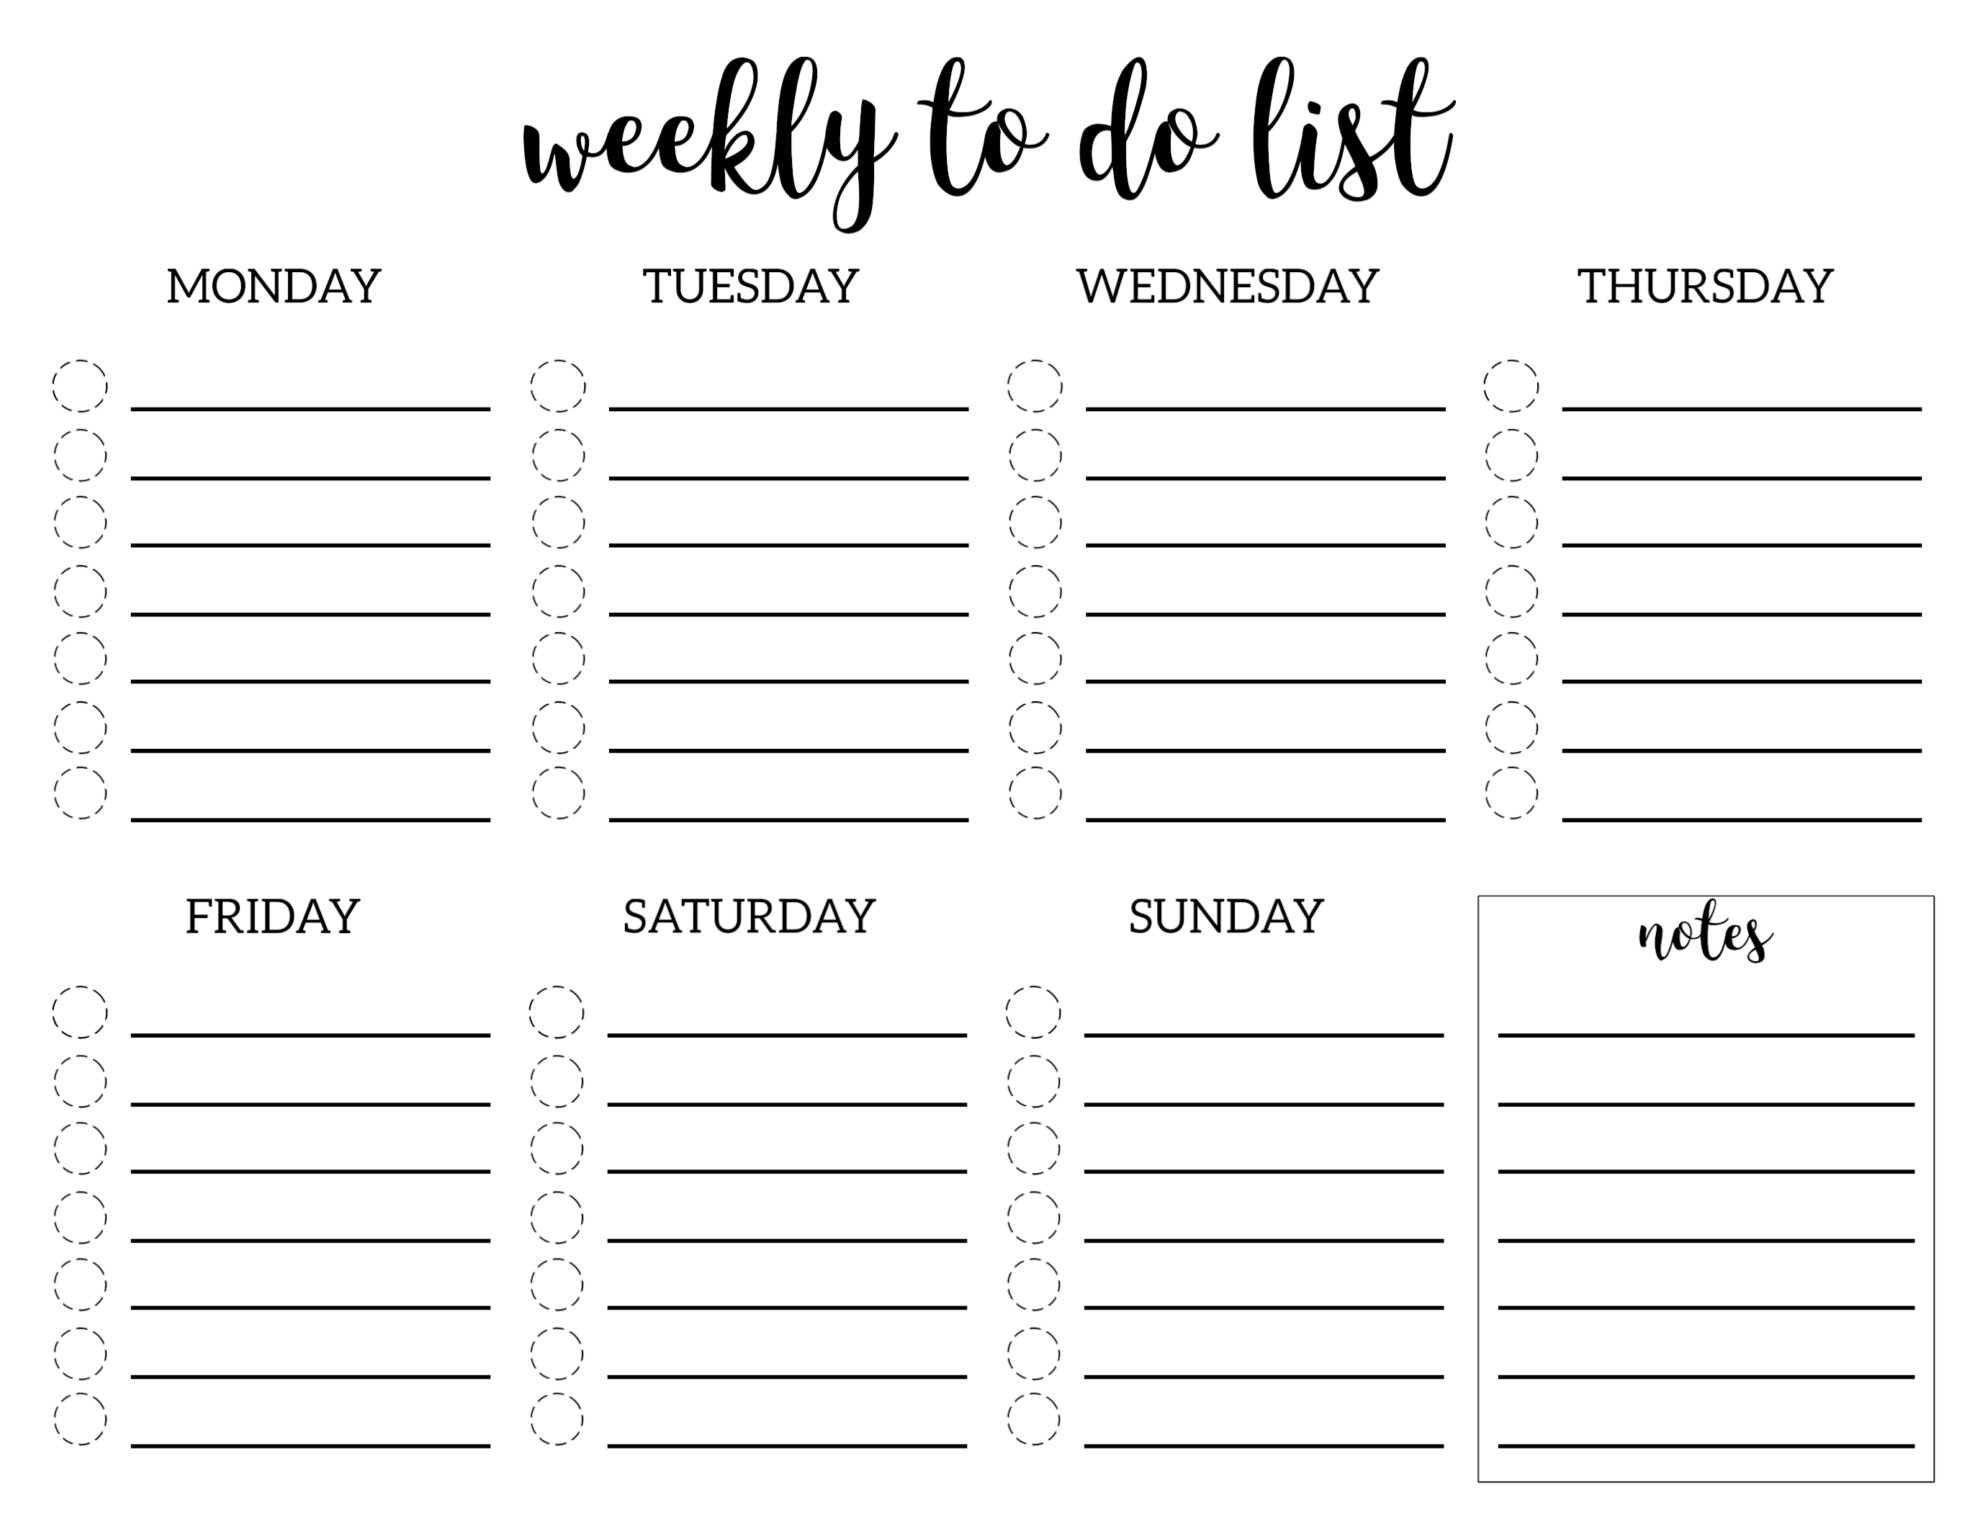 Weekly To Do List Printable Checklist Template